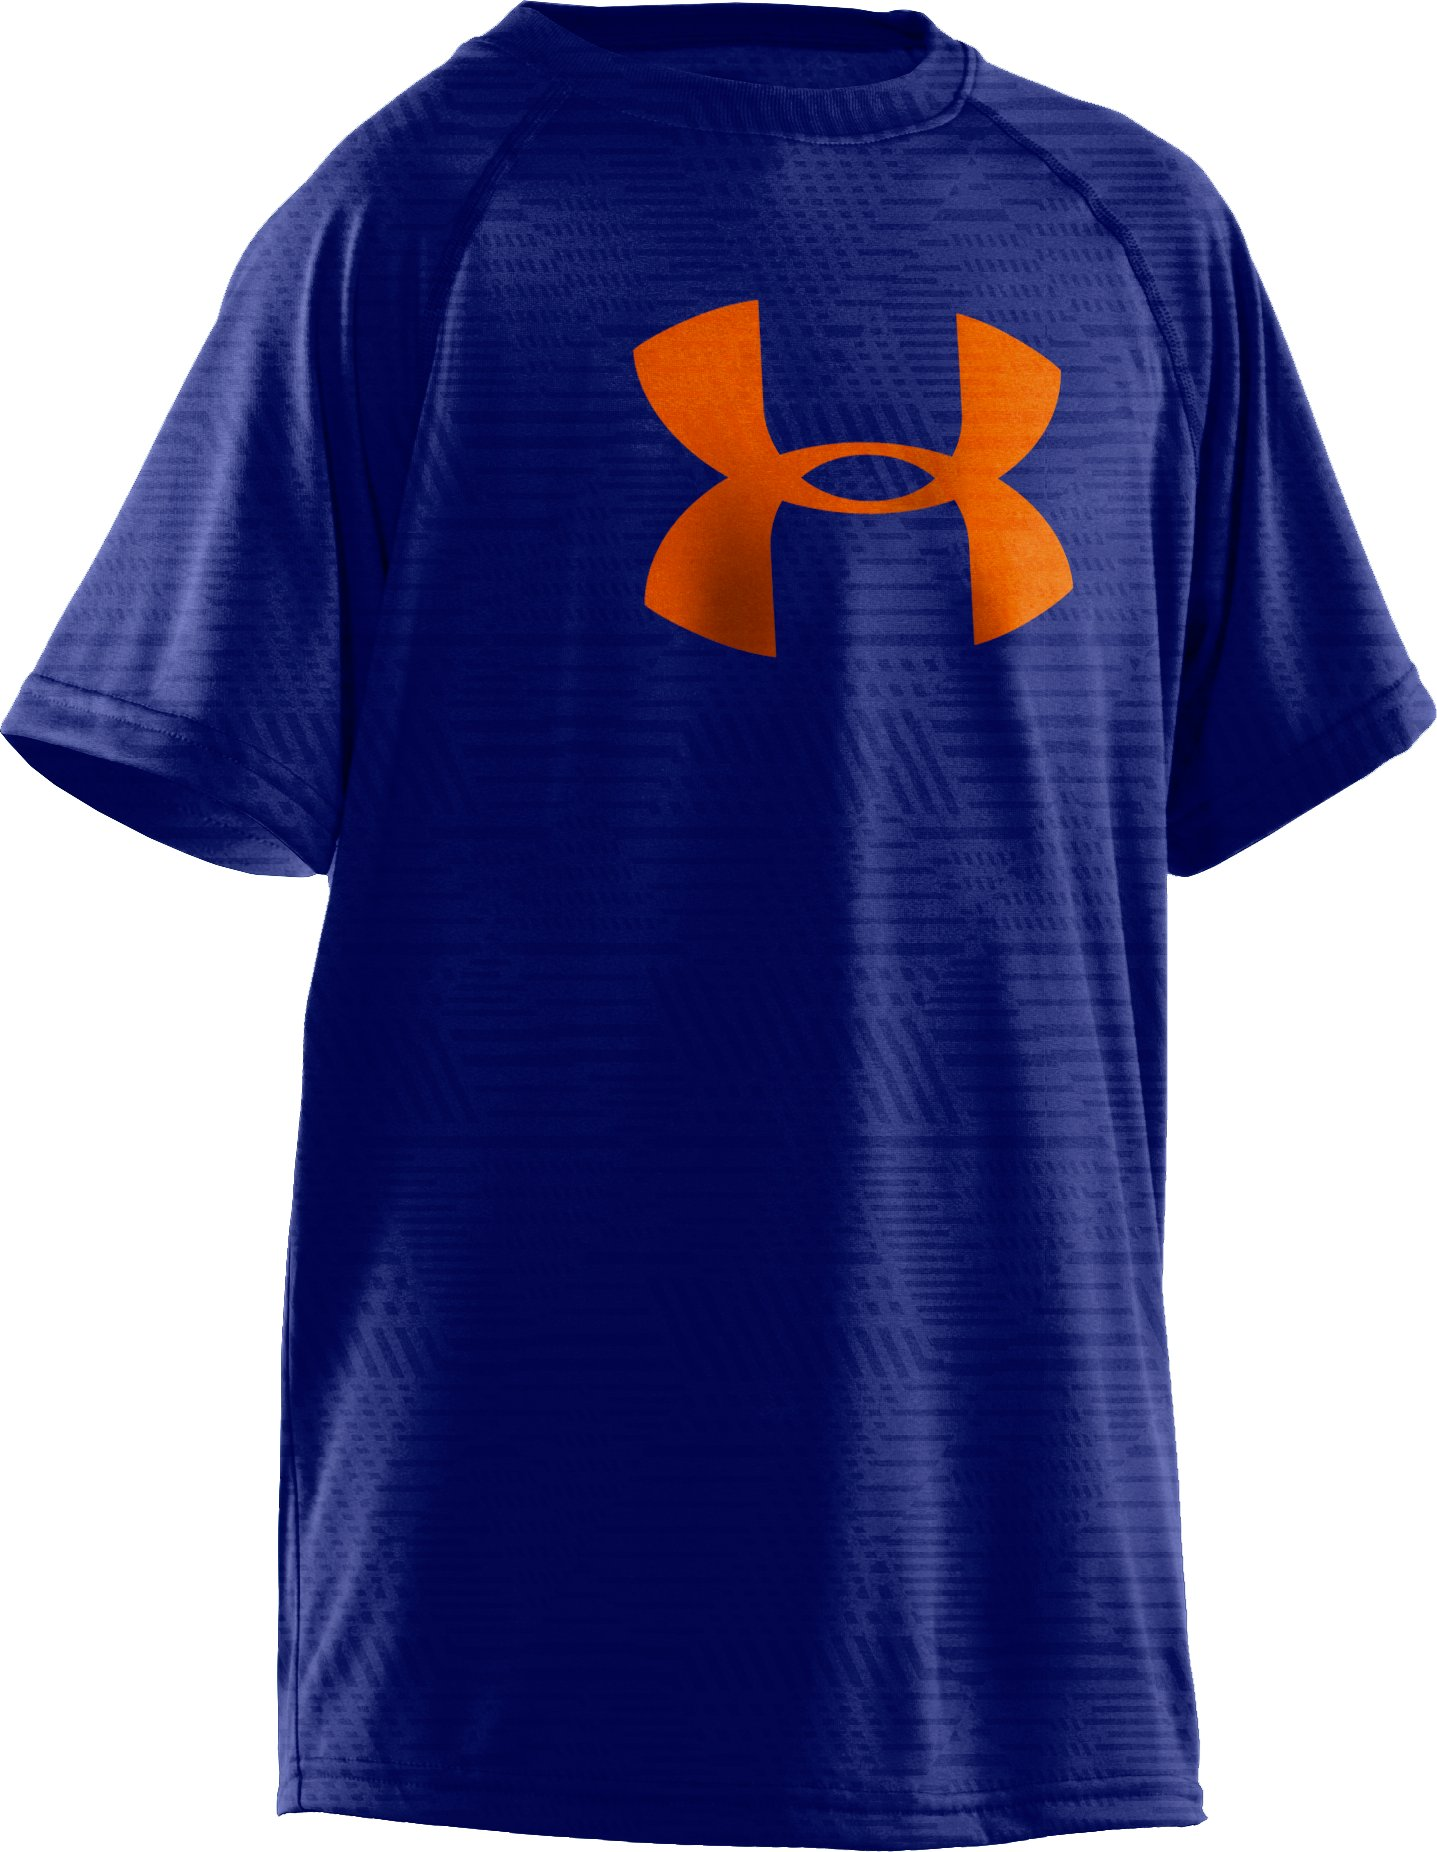 Boys' UA Big Logo Embossed T-Shirt, Royal, zoomed image